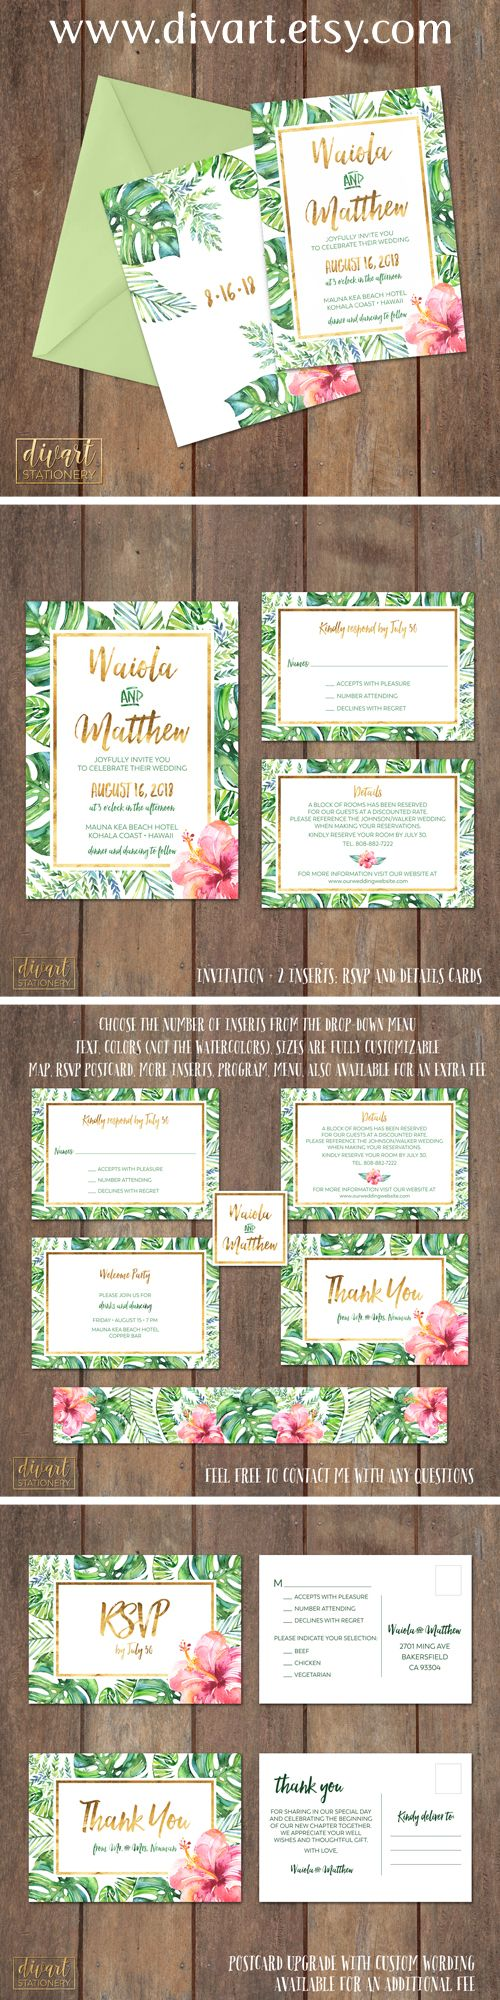 how to write muslim wedding invitation card%0A Wedding invitations with palm leaves and hibiscus  Printable Wedding  Invitation Suite  I design you